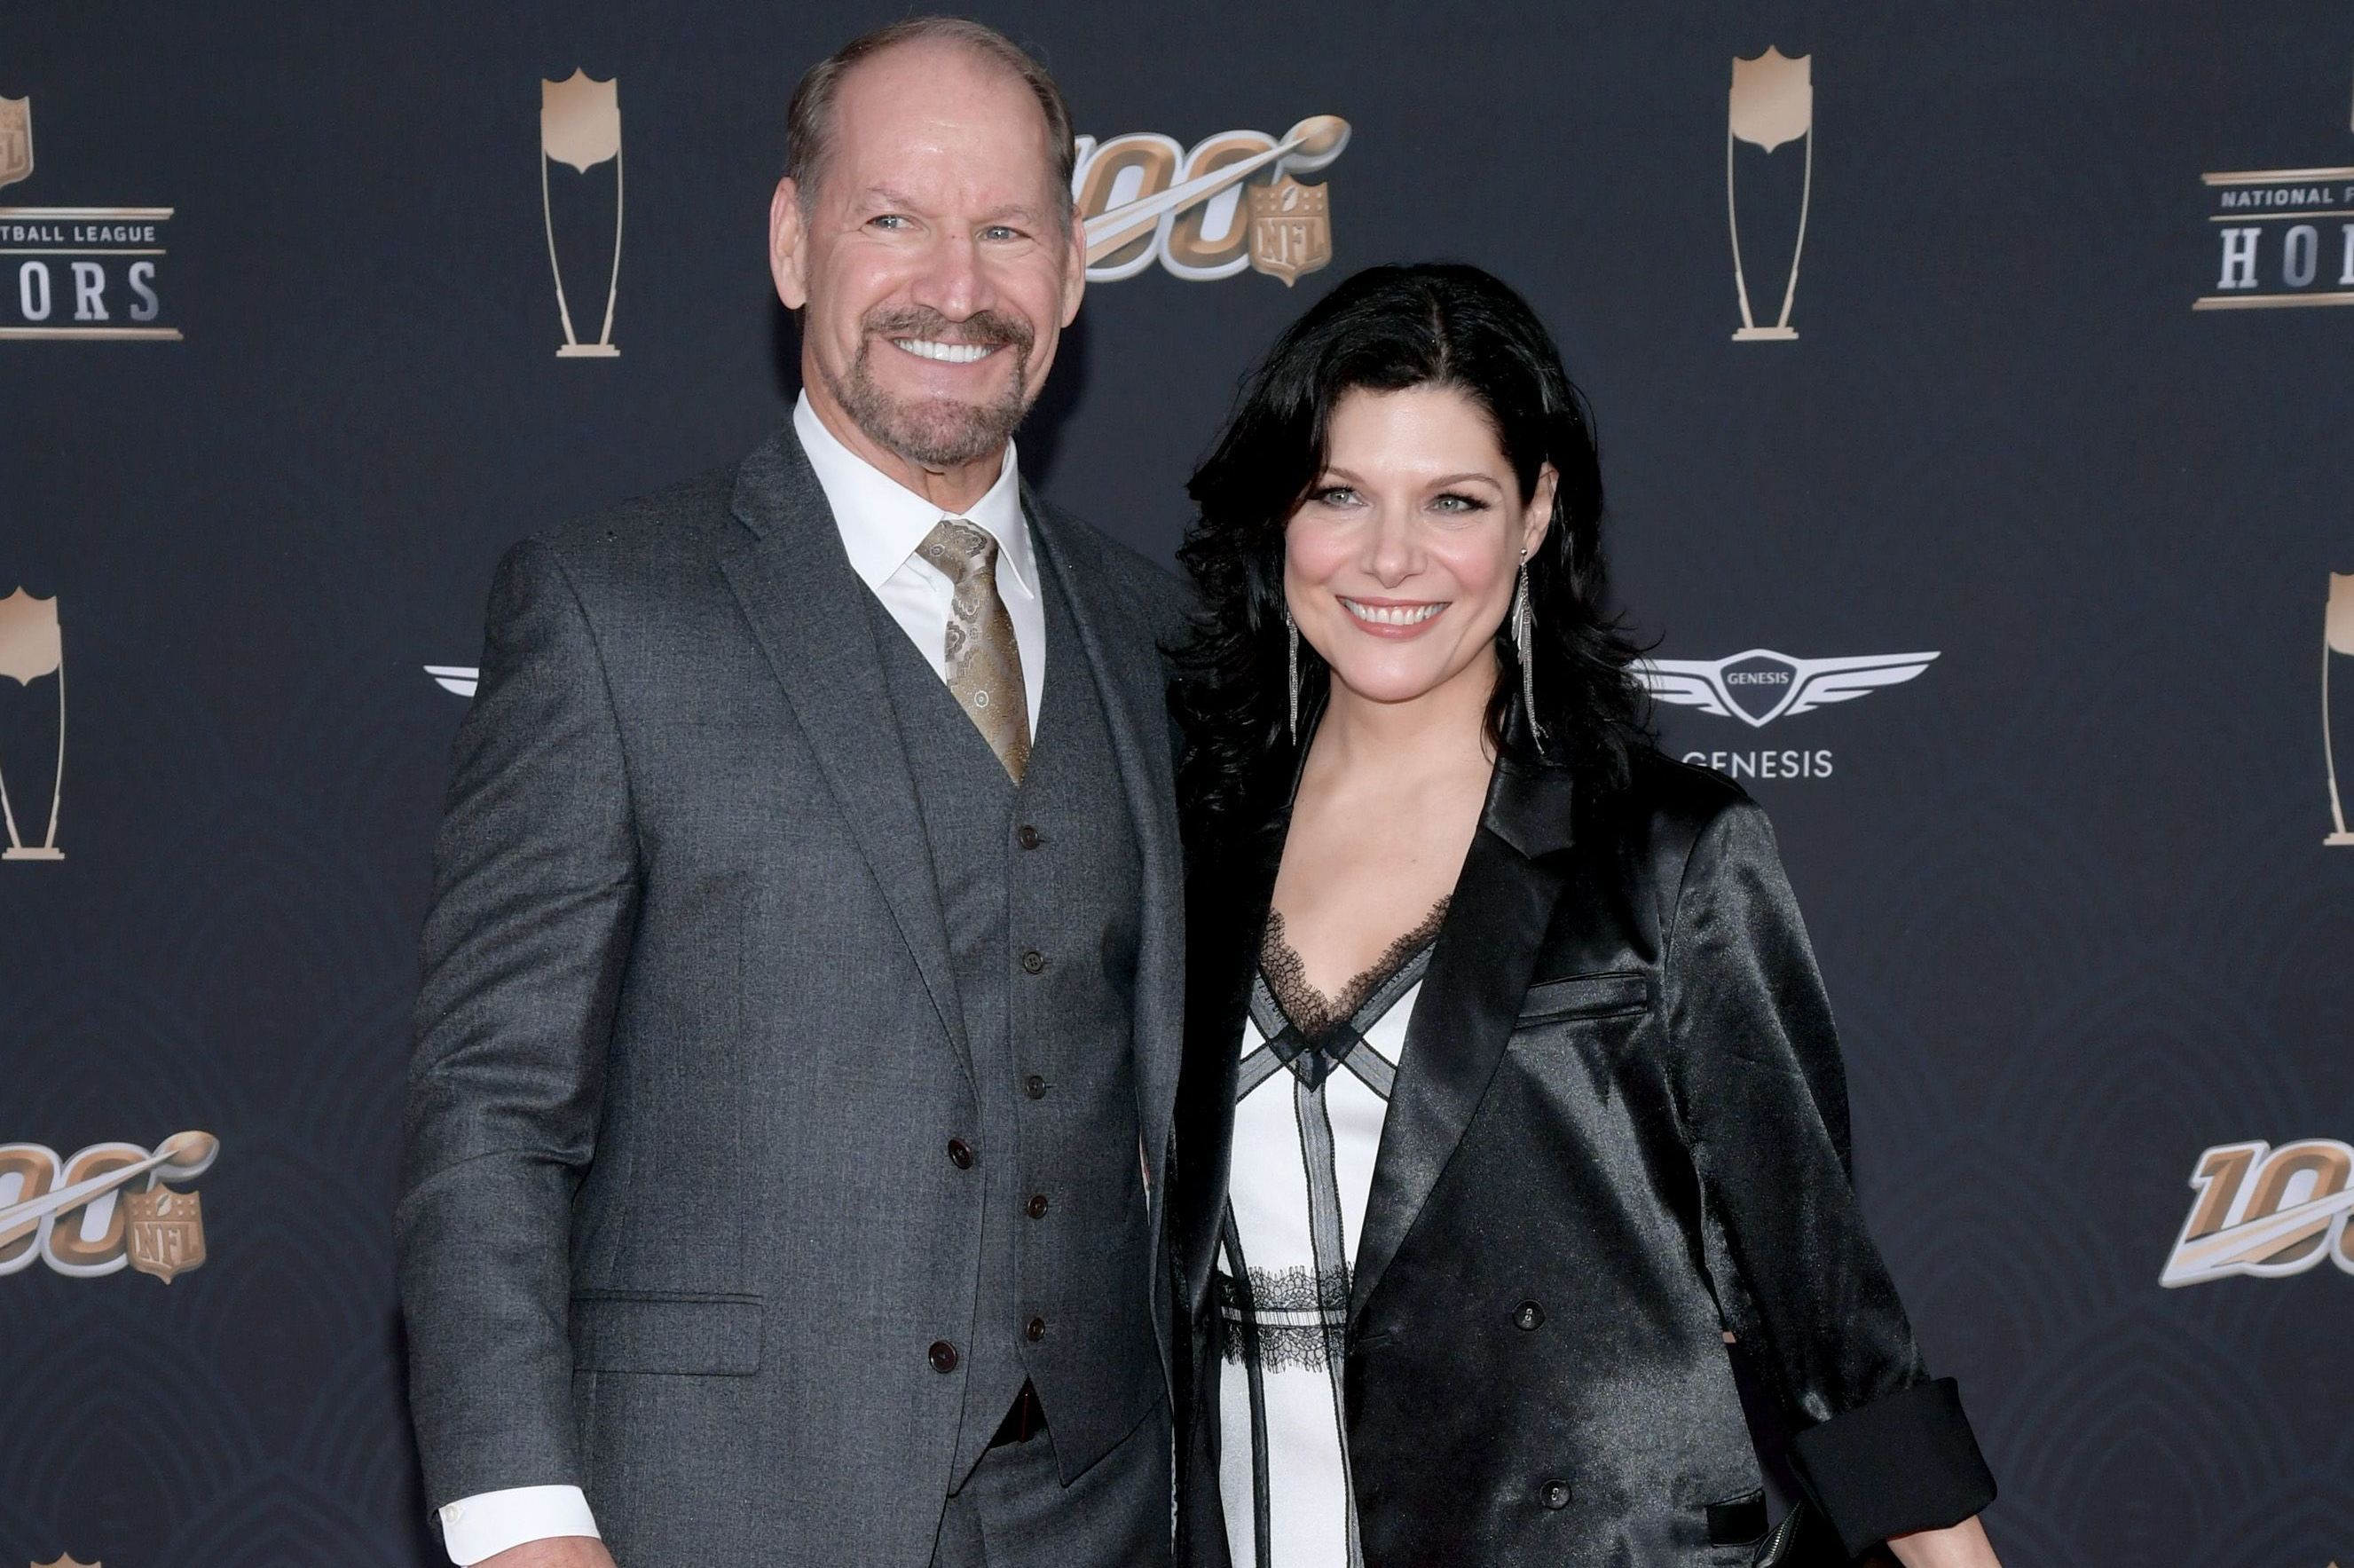 Ex Steelers Hc Bill Cowher Wife Veronica Tested Positive For Covid Antibodies Bleacher Report Latest News Videos And Highlights